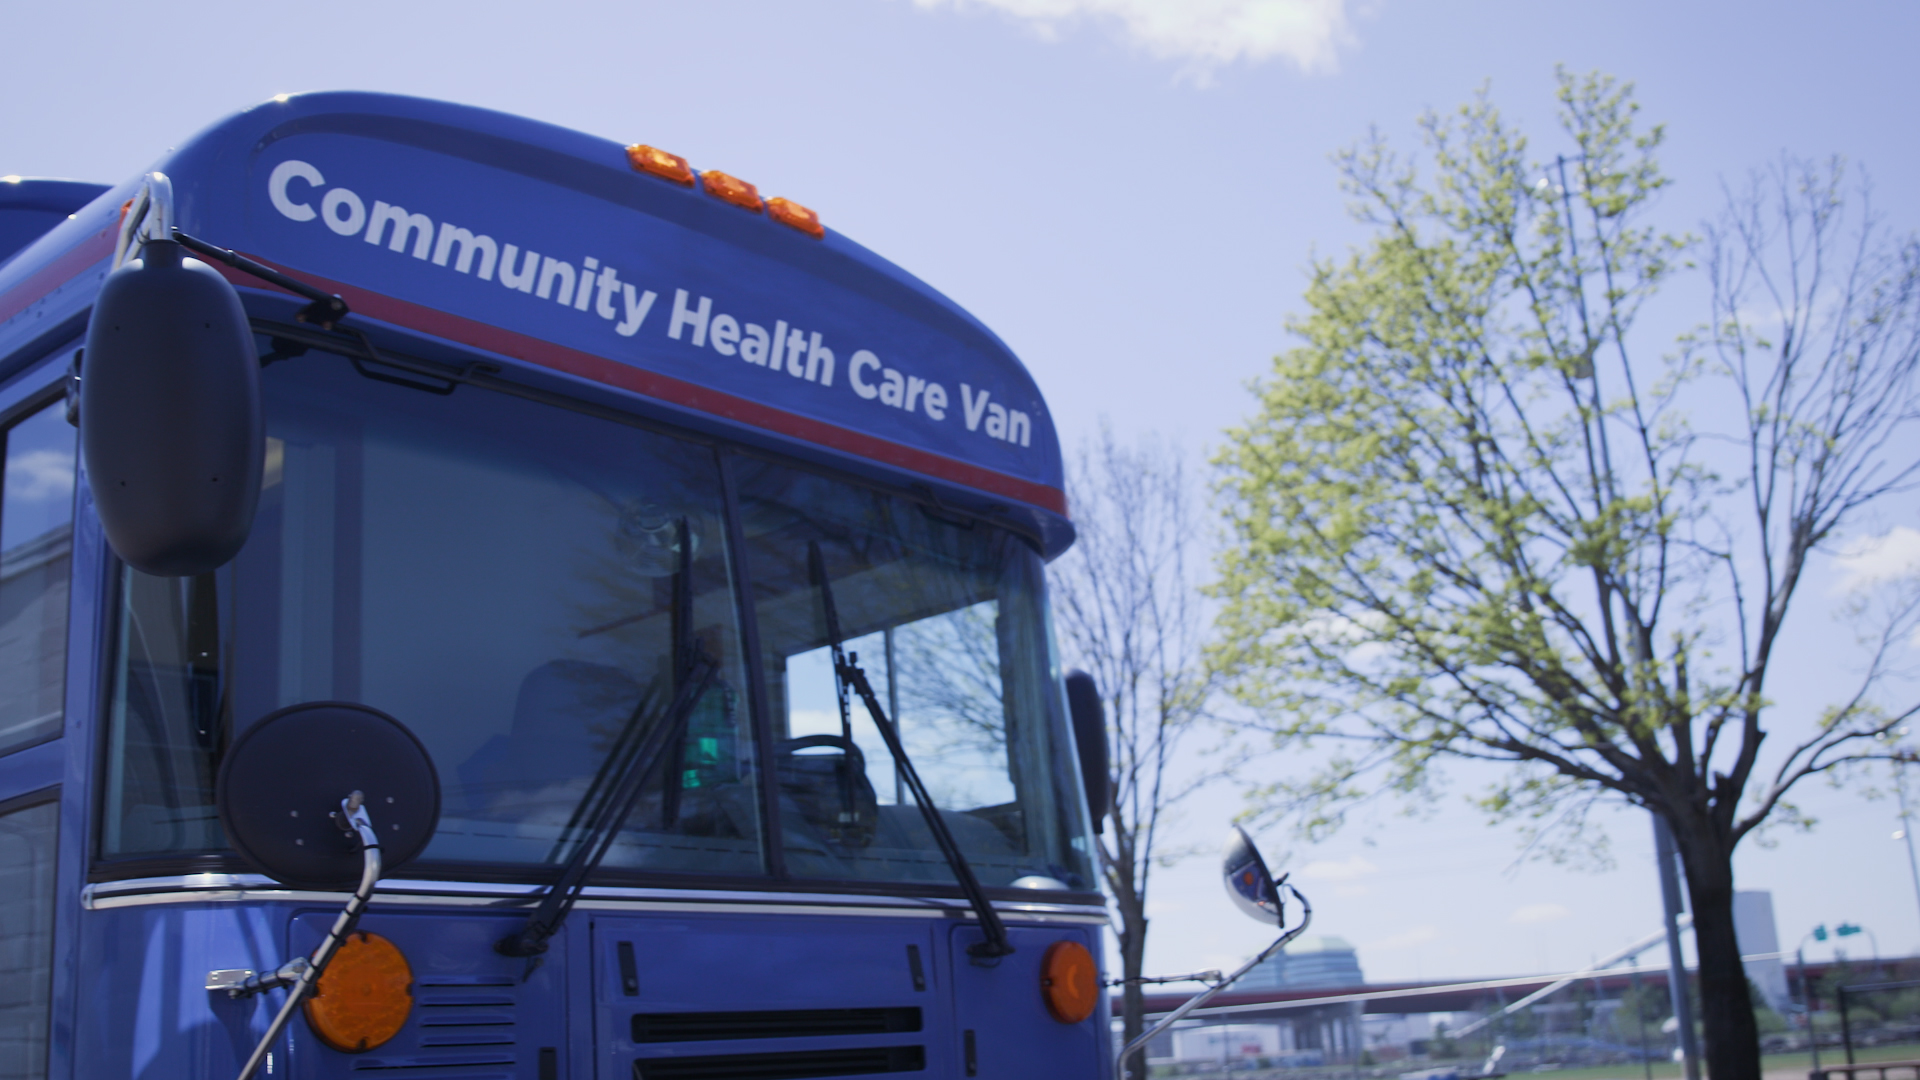 Getting Care To The Community With The Health Care Van